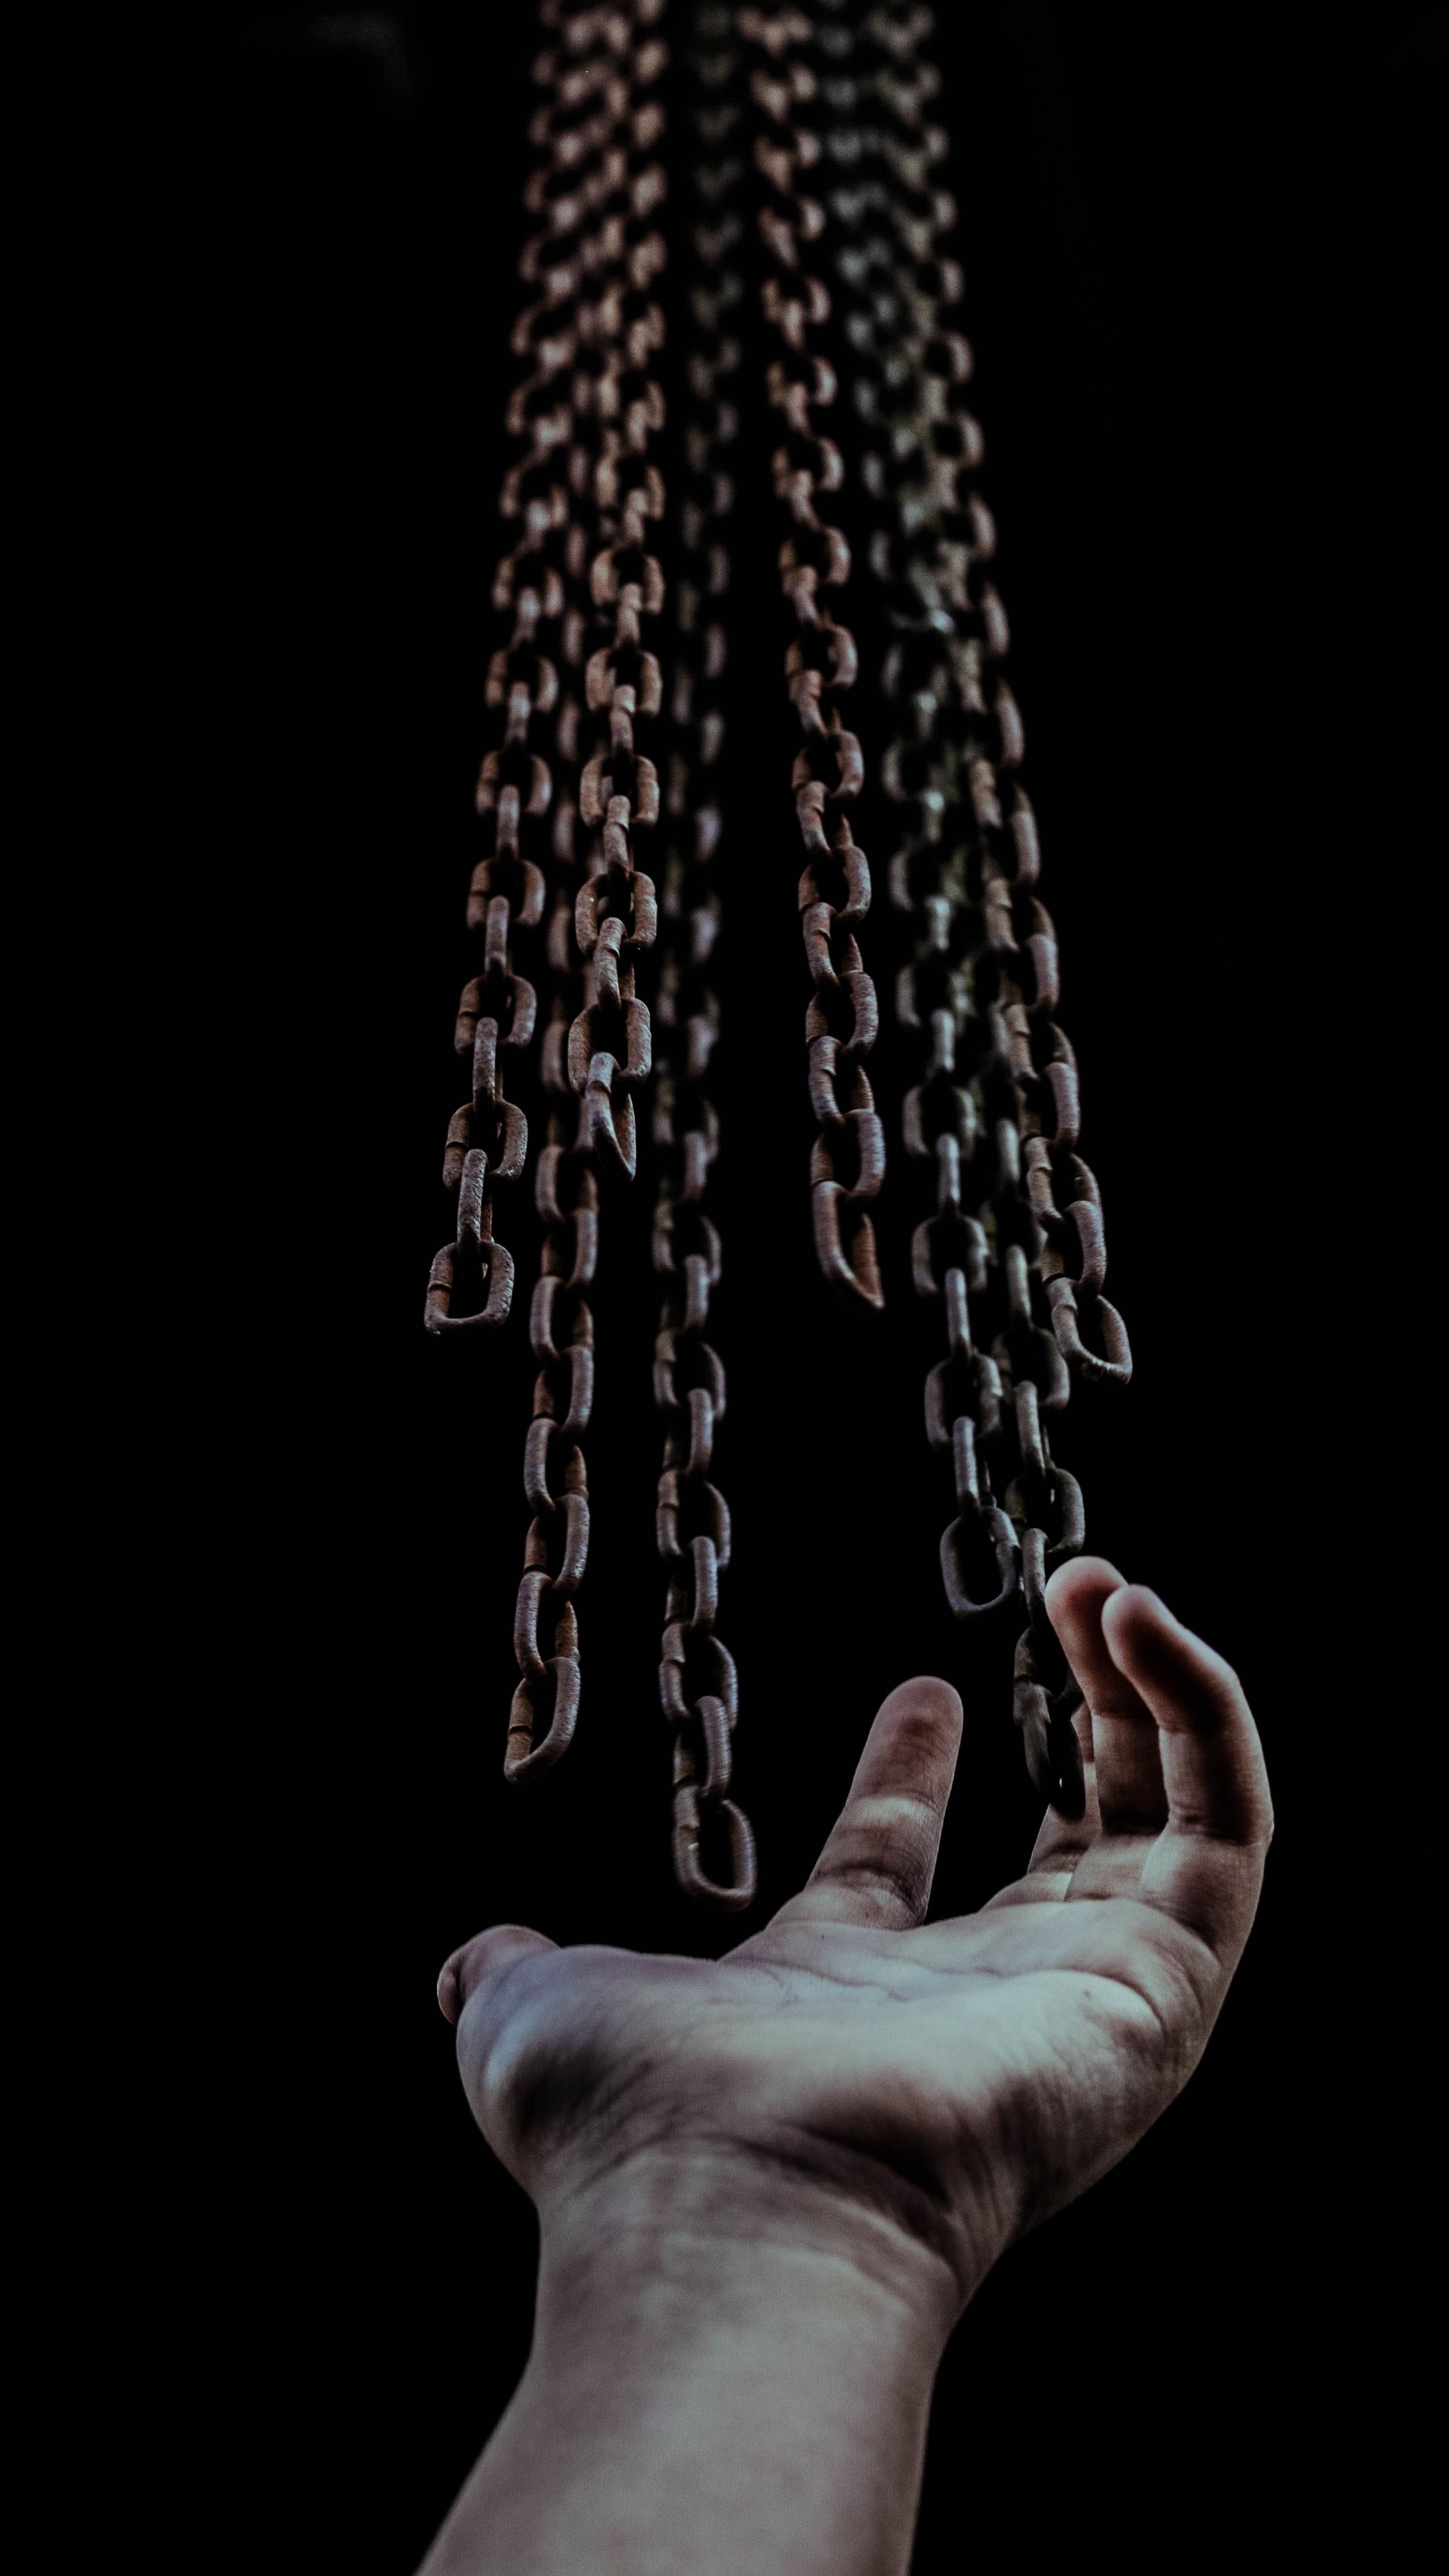 Misc Hand Chains Freedom Android Wallpapers 4k Hd Freedom Pictures Dark Wallpaper Freedom Images